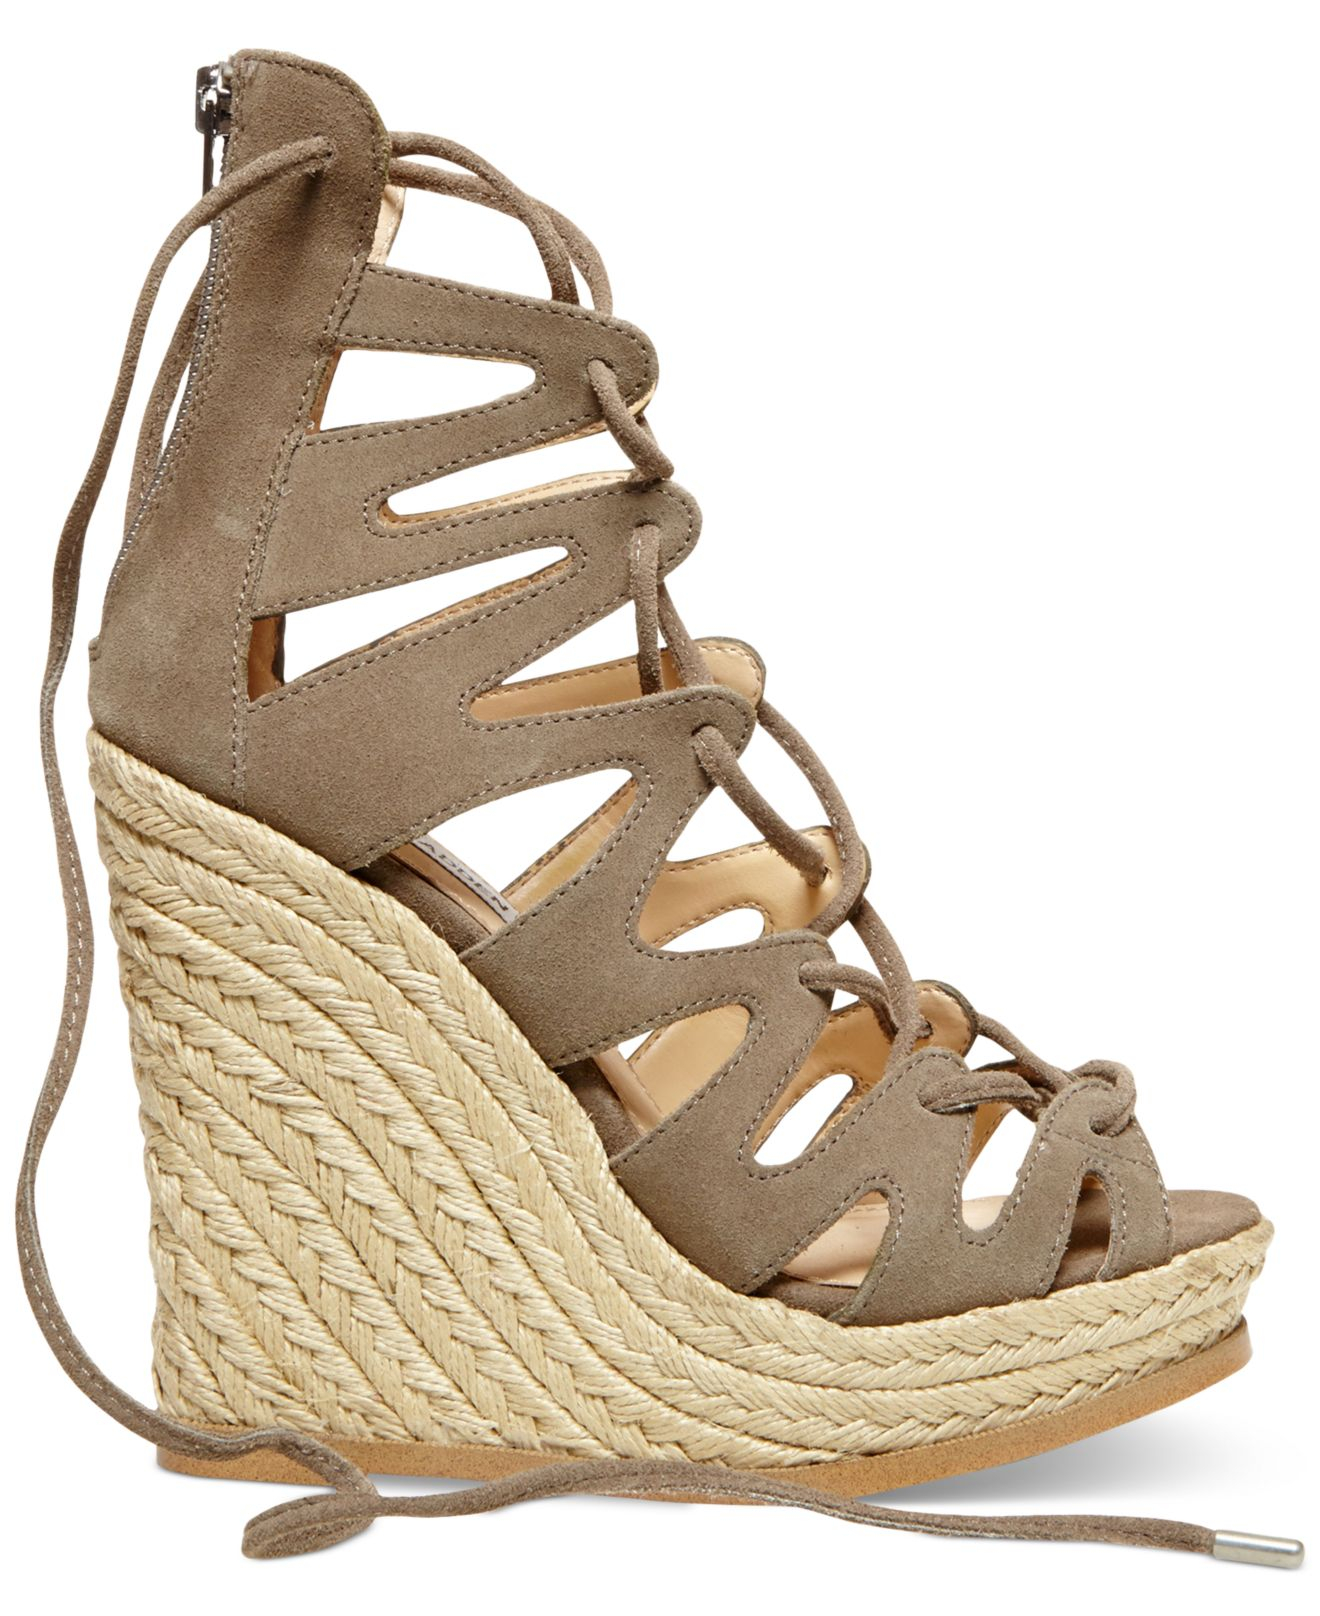 e81b36a216 Steve Madden Women'S Theea Ghillie Platform Wedge Sandals in Brown ...